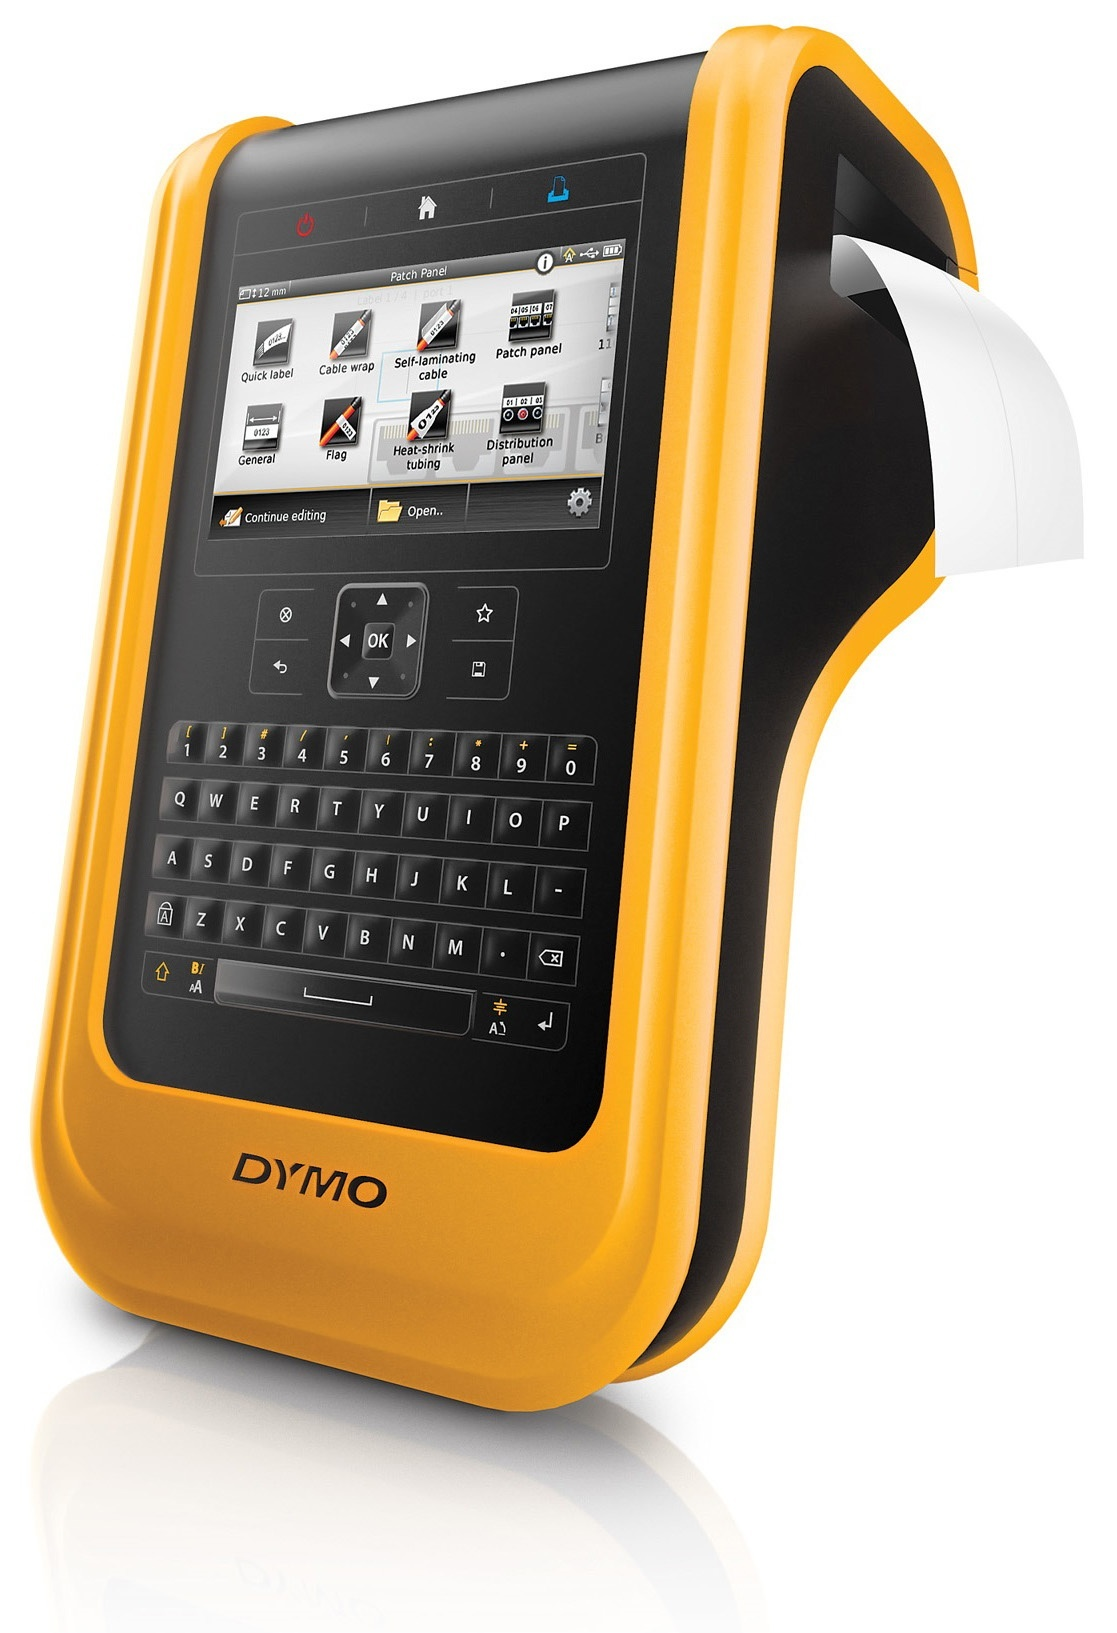 dymo_industrial-xtl500-kit-printer-qwy-closed_00302-2.jpg